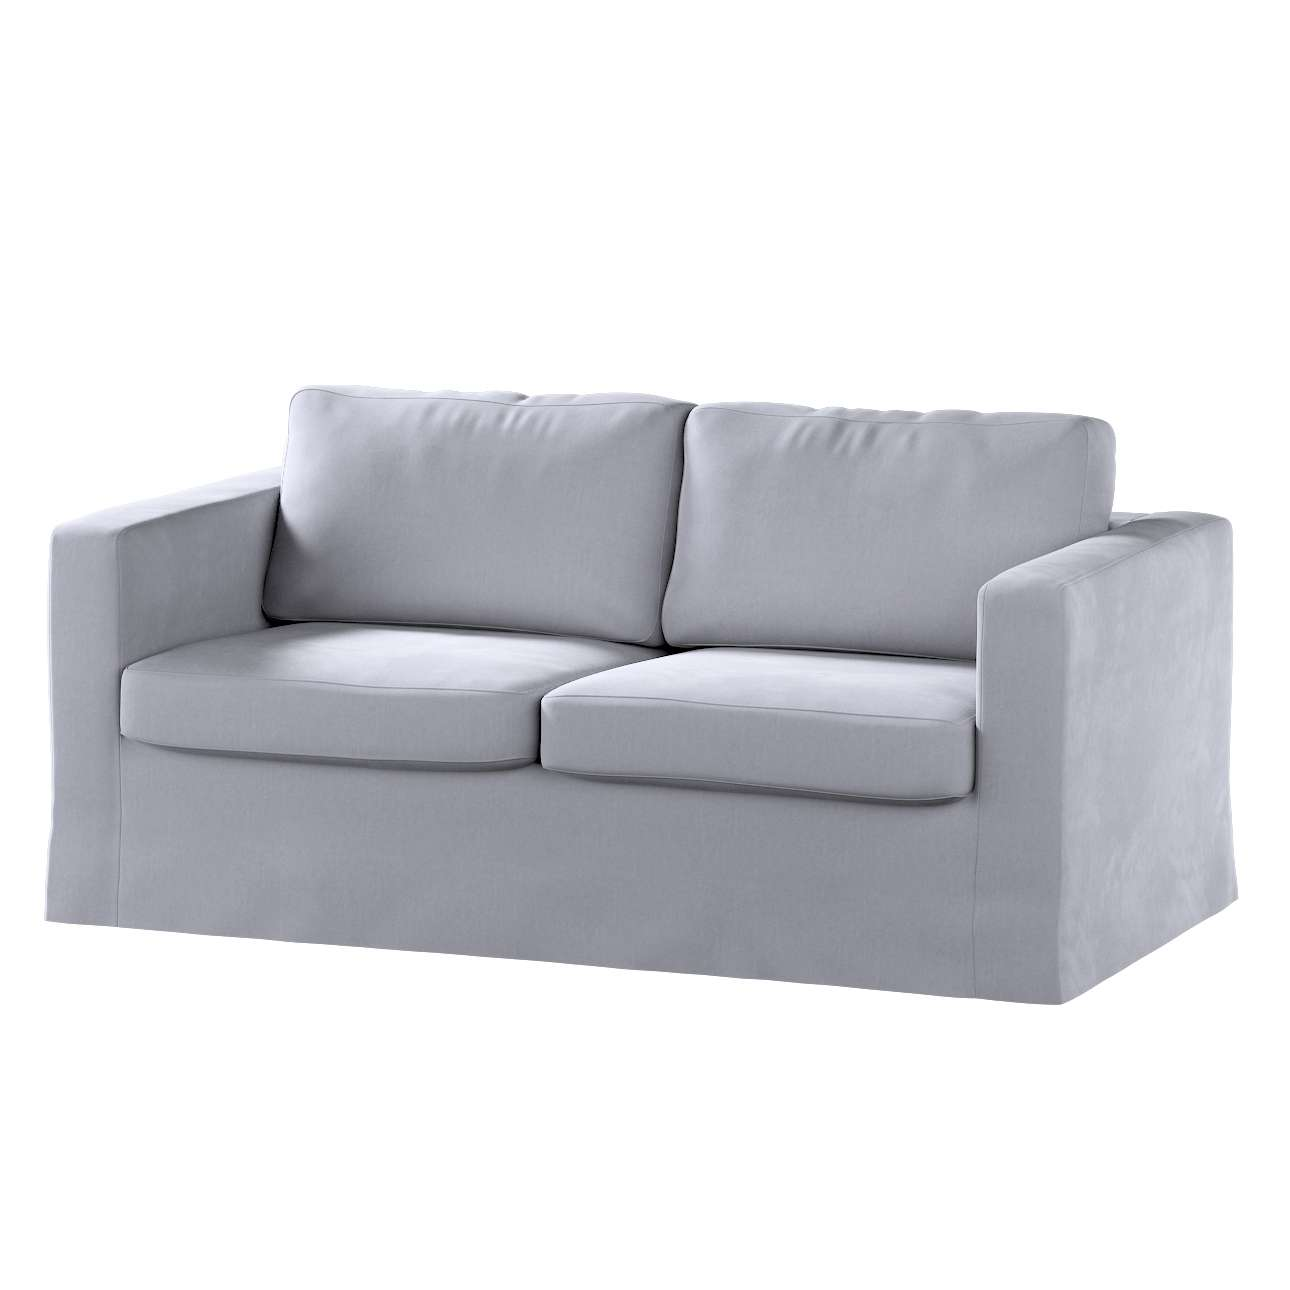 Floor length Karlstad 2-seater sofa cover in collection Velvet, fabric: 704-24